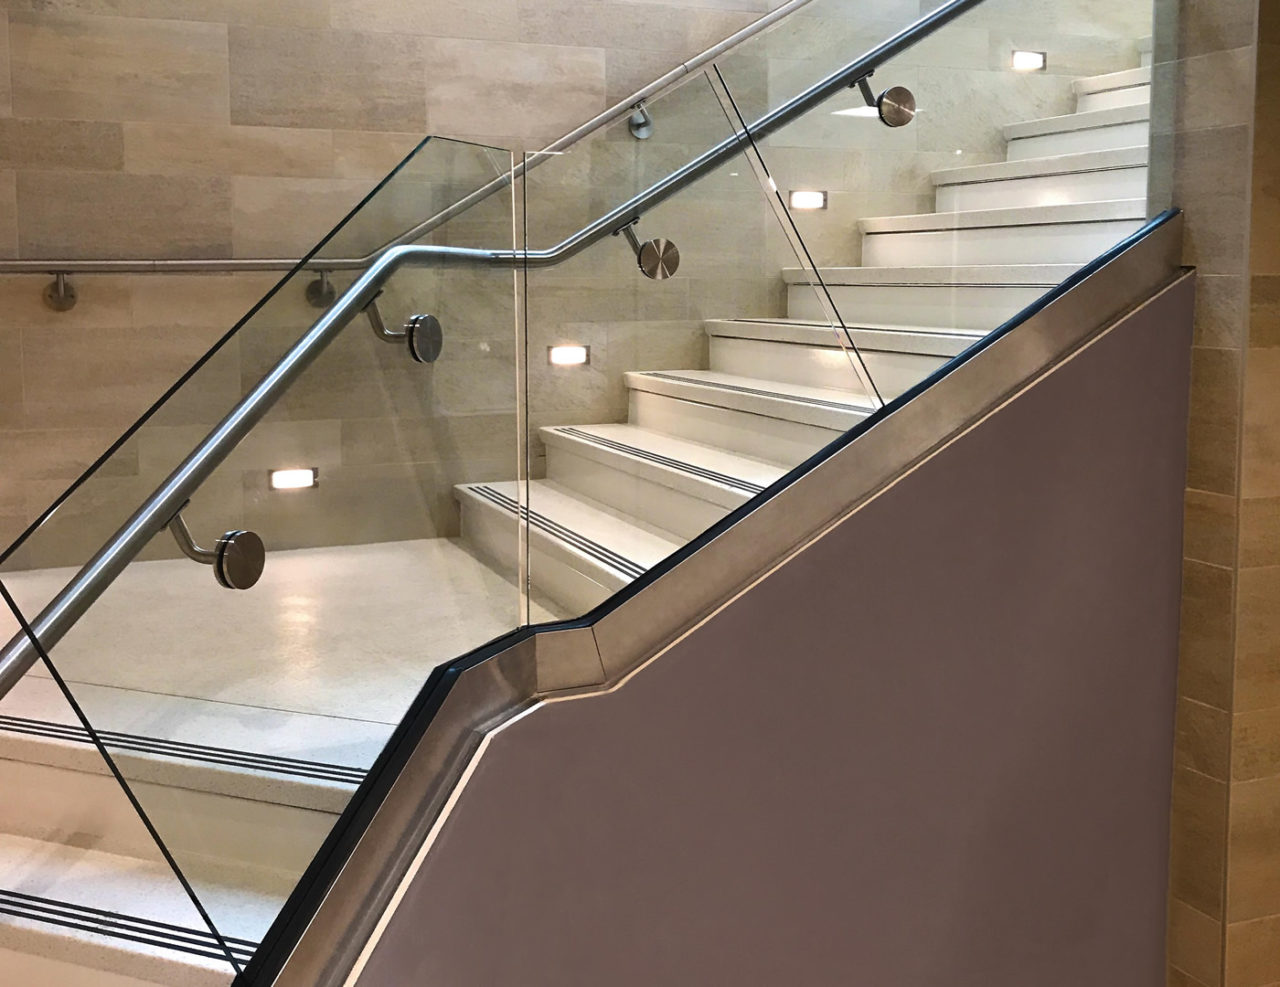 Specially-formed glass was provided for the stair installation of our Track Rail glass railing system.